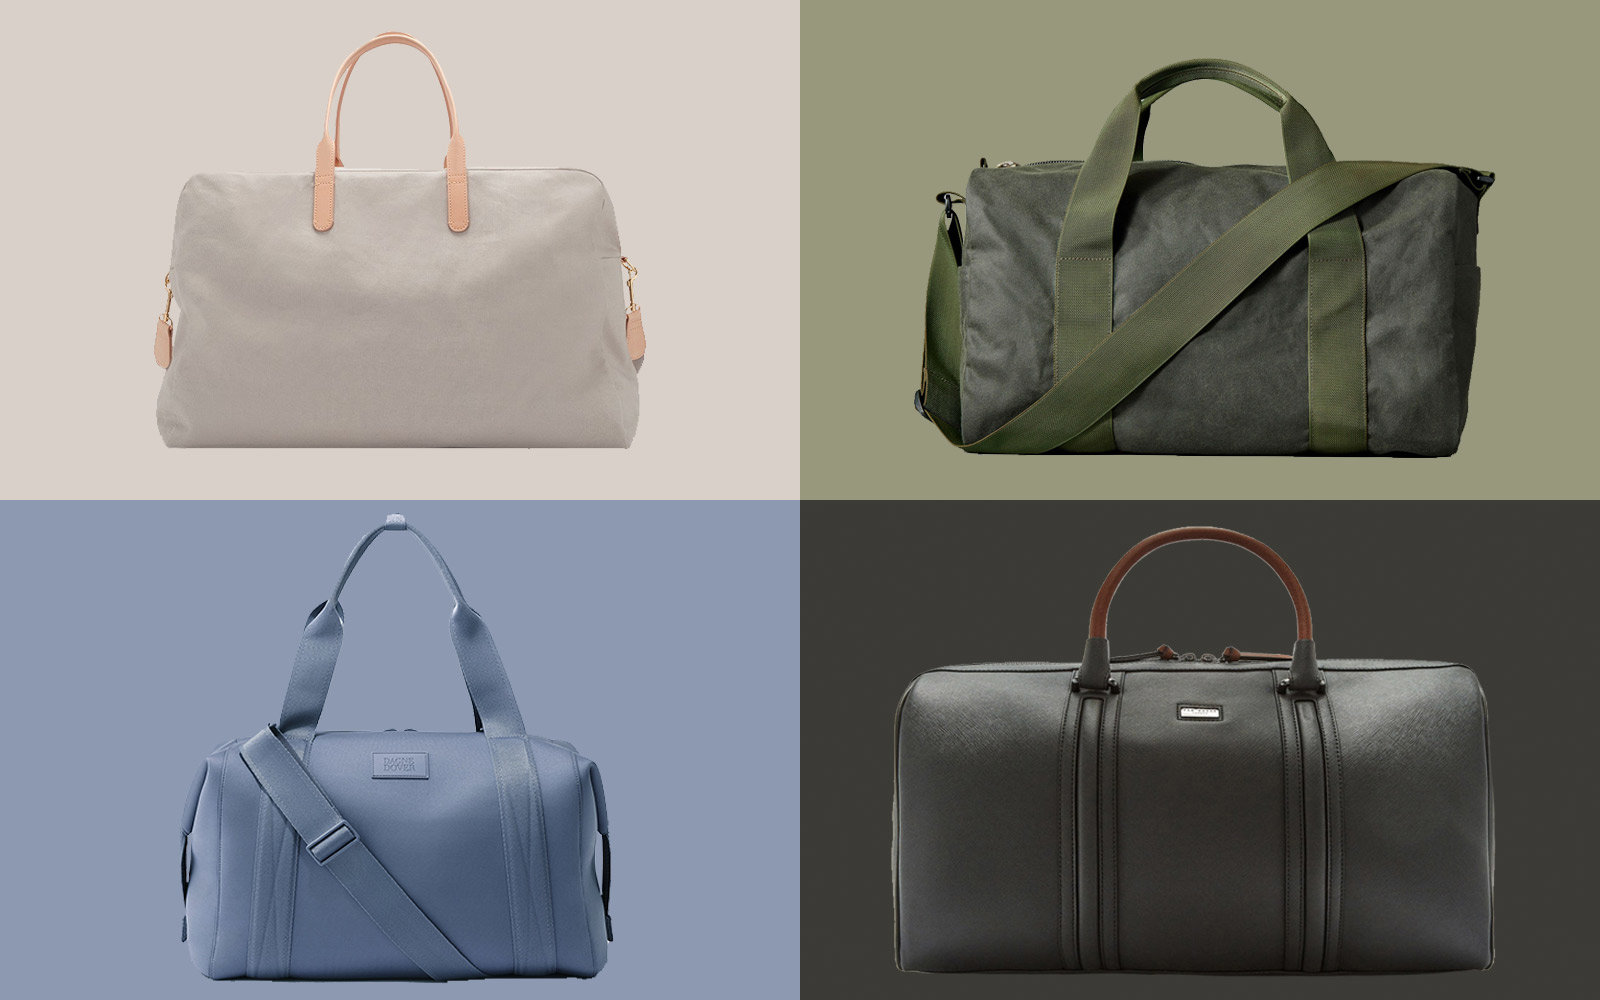 bcc79aee719 The Best Weekender Bags, According to Travel Editors   Travel + Leisure